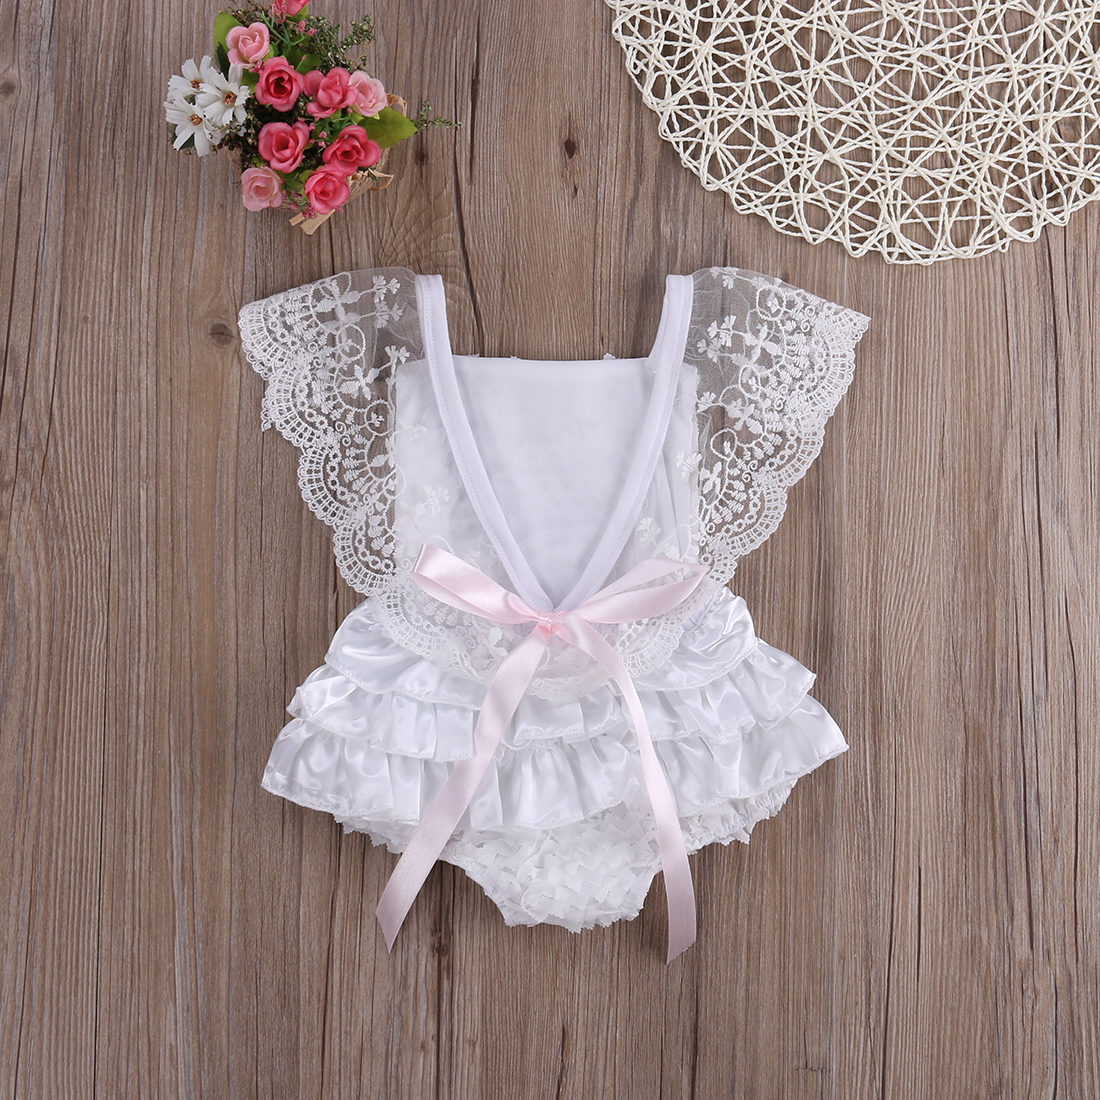 Cute Baby Girl Romper Sunsuit White Summer Outfits